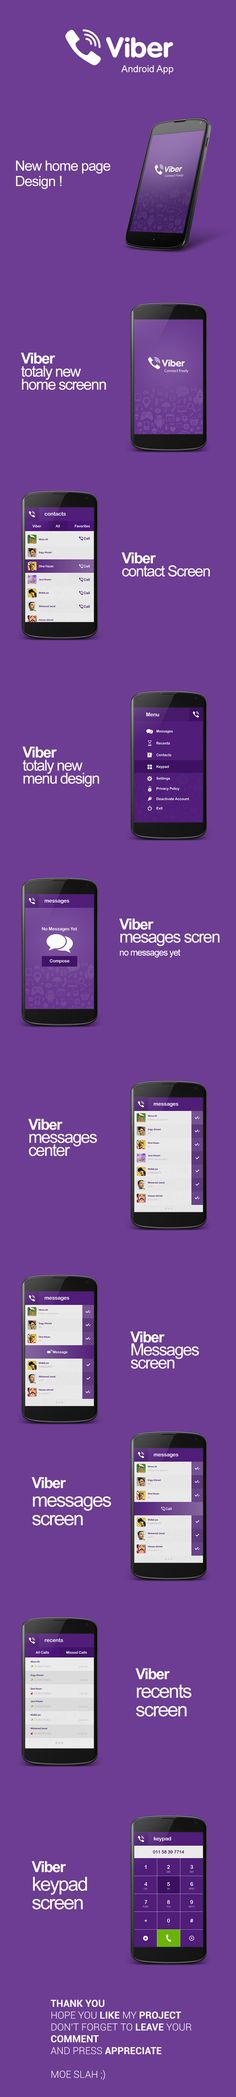 Moe slah / Viber Android app re-design